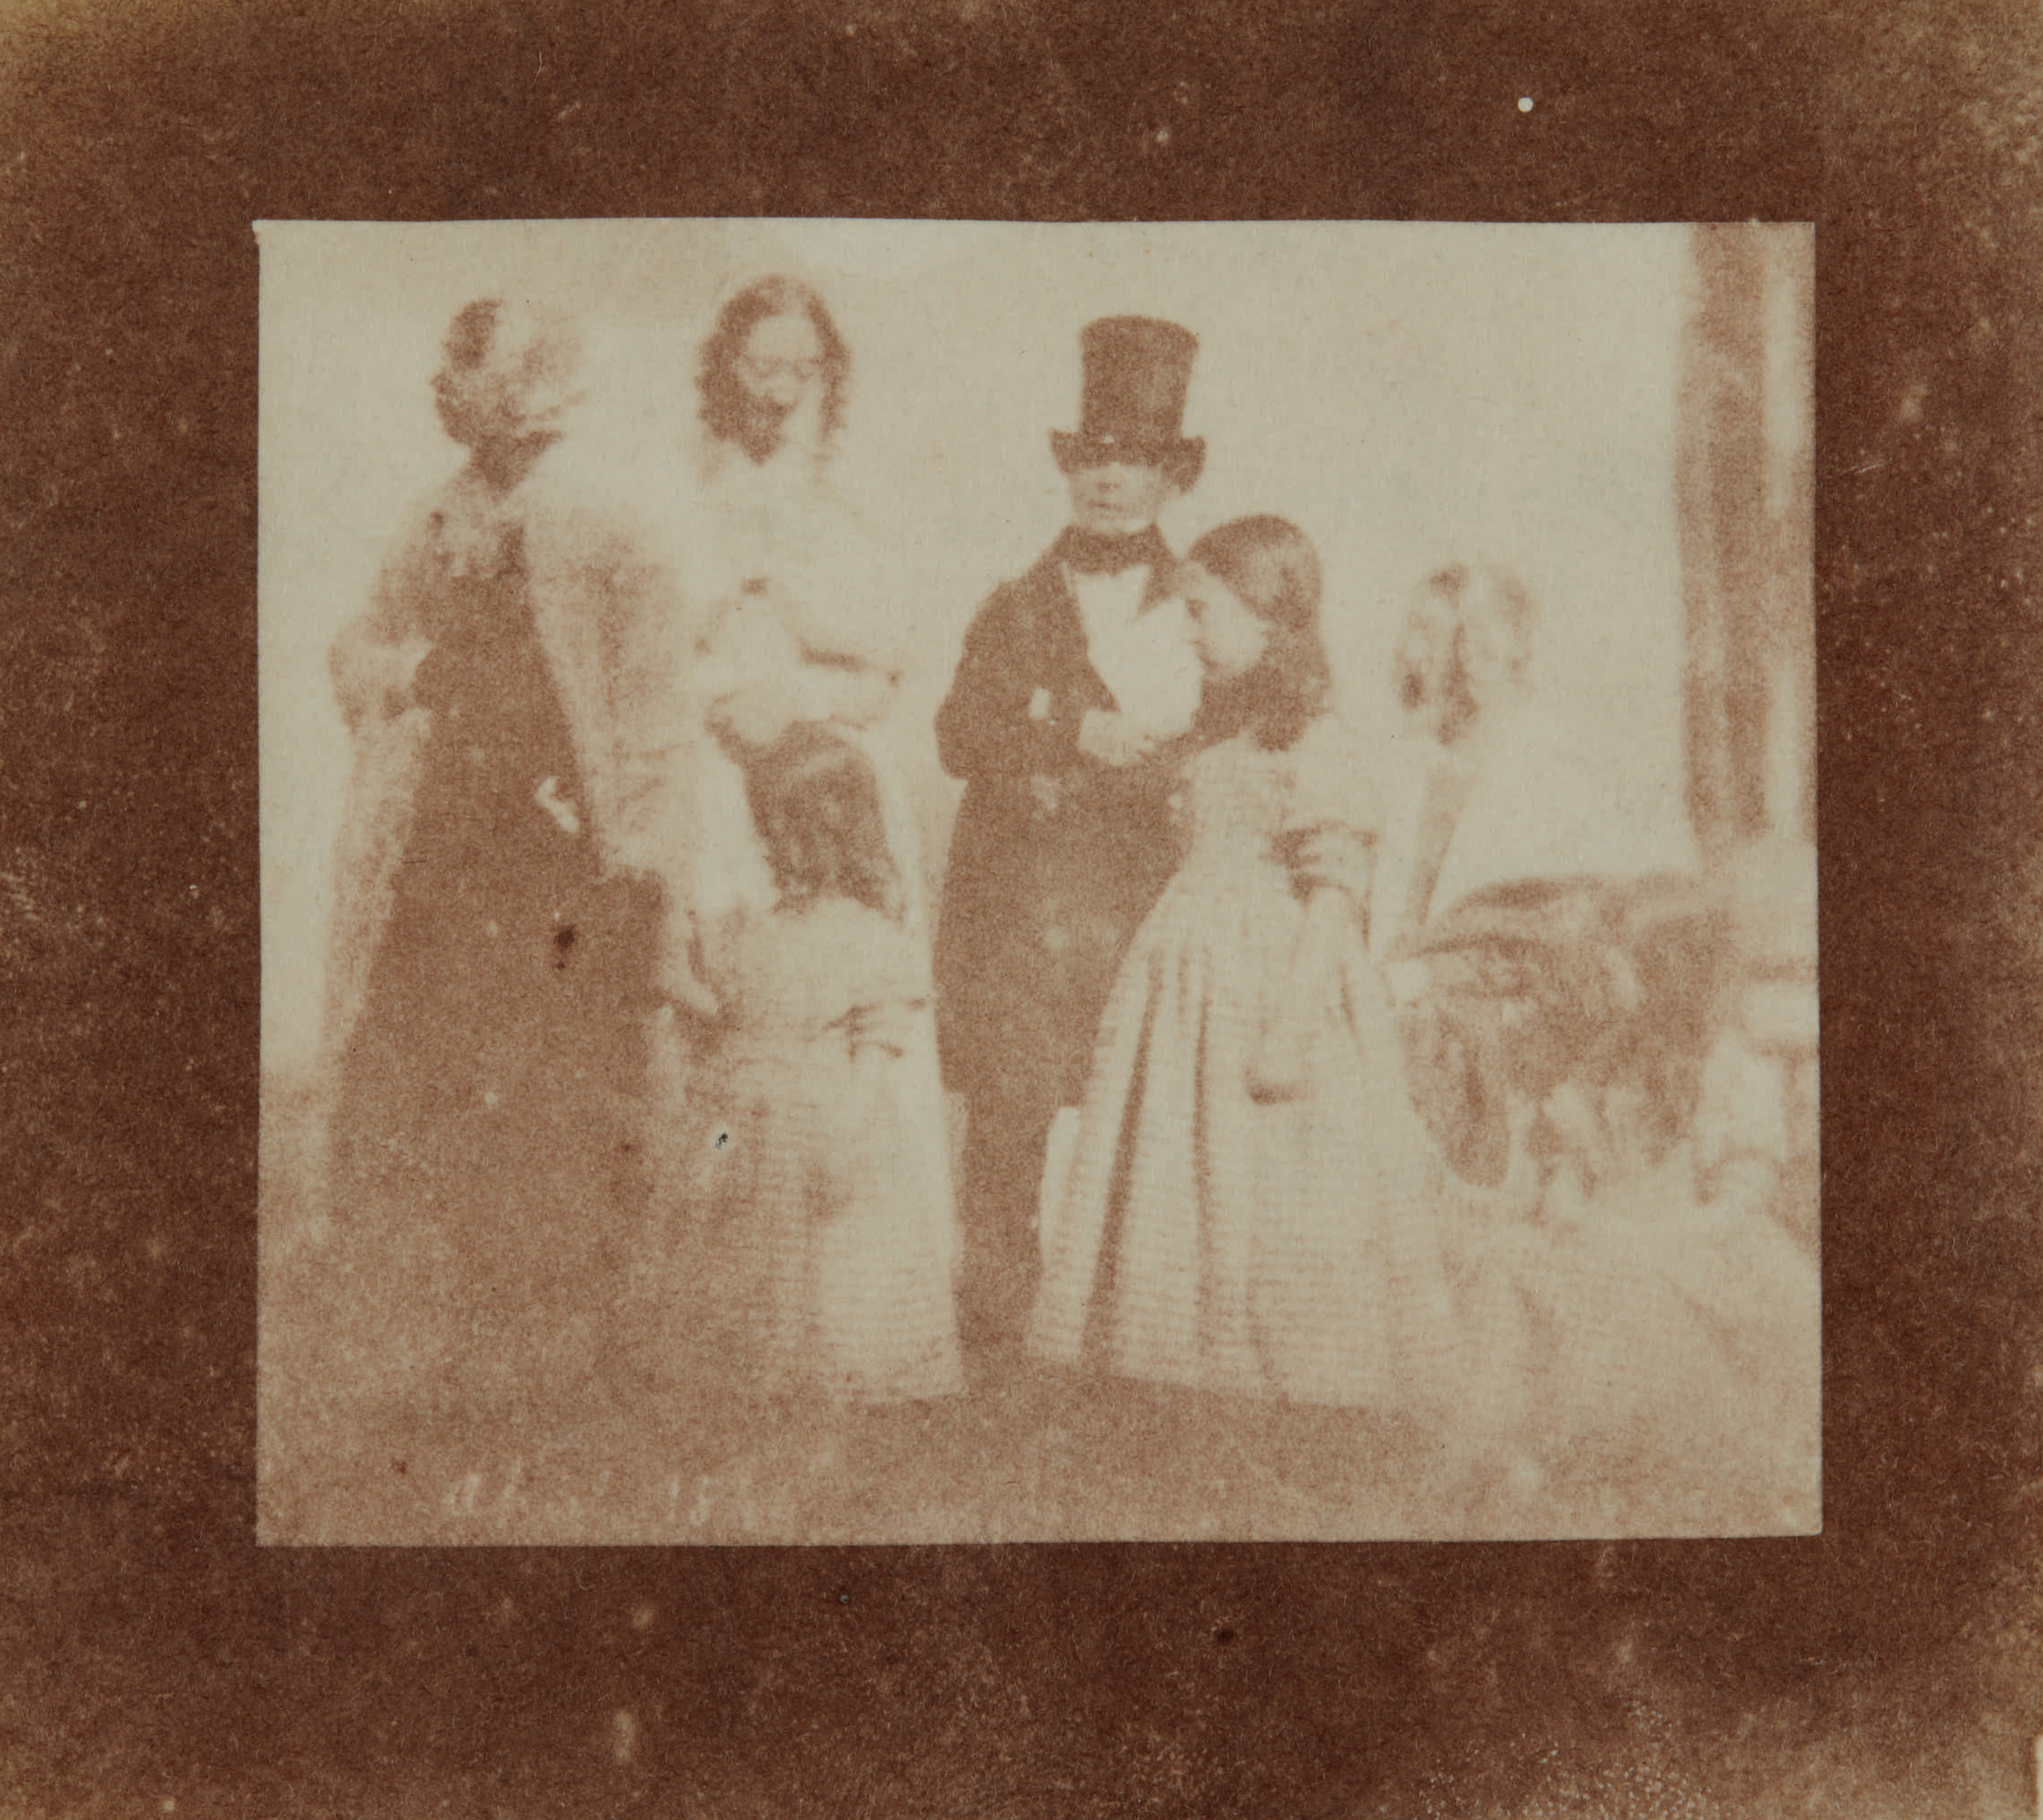 Fotó: William Henry Fox Talbot:<br />Thomas Moore (poet), Horatia Feilding (sister), Ela Theresa Talbot (daughter), Rosamond Constance Talbot (daughter), and Matilda Caroline Talbot (daughter) (1844)<br />William Henry Fox Talbot Archive<br />Courtesy of Sotheby's